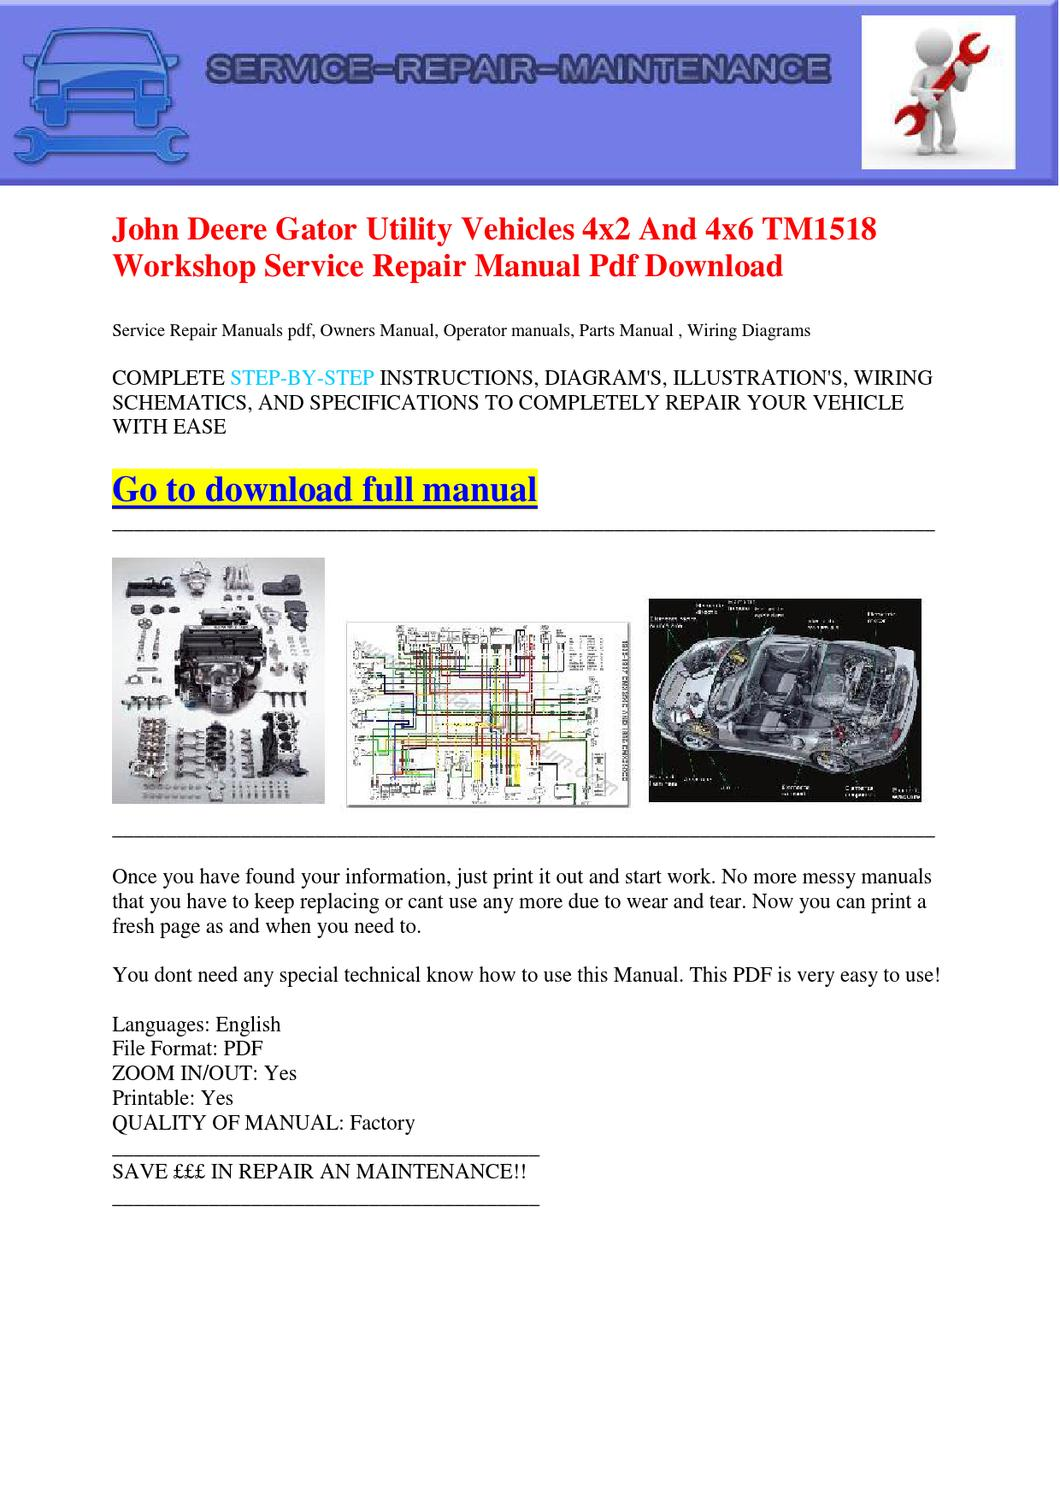 John Deere Gator Utility Vehicles 4x2 And 4x6 Tm1518 Workshop Service Repair Manual Pdf Download